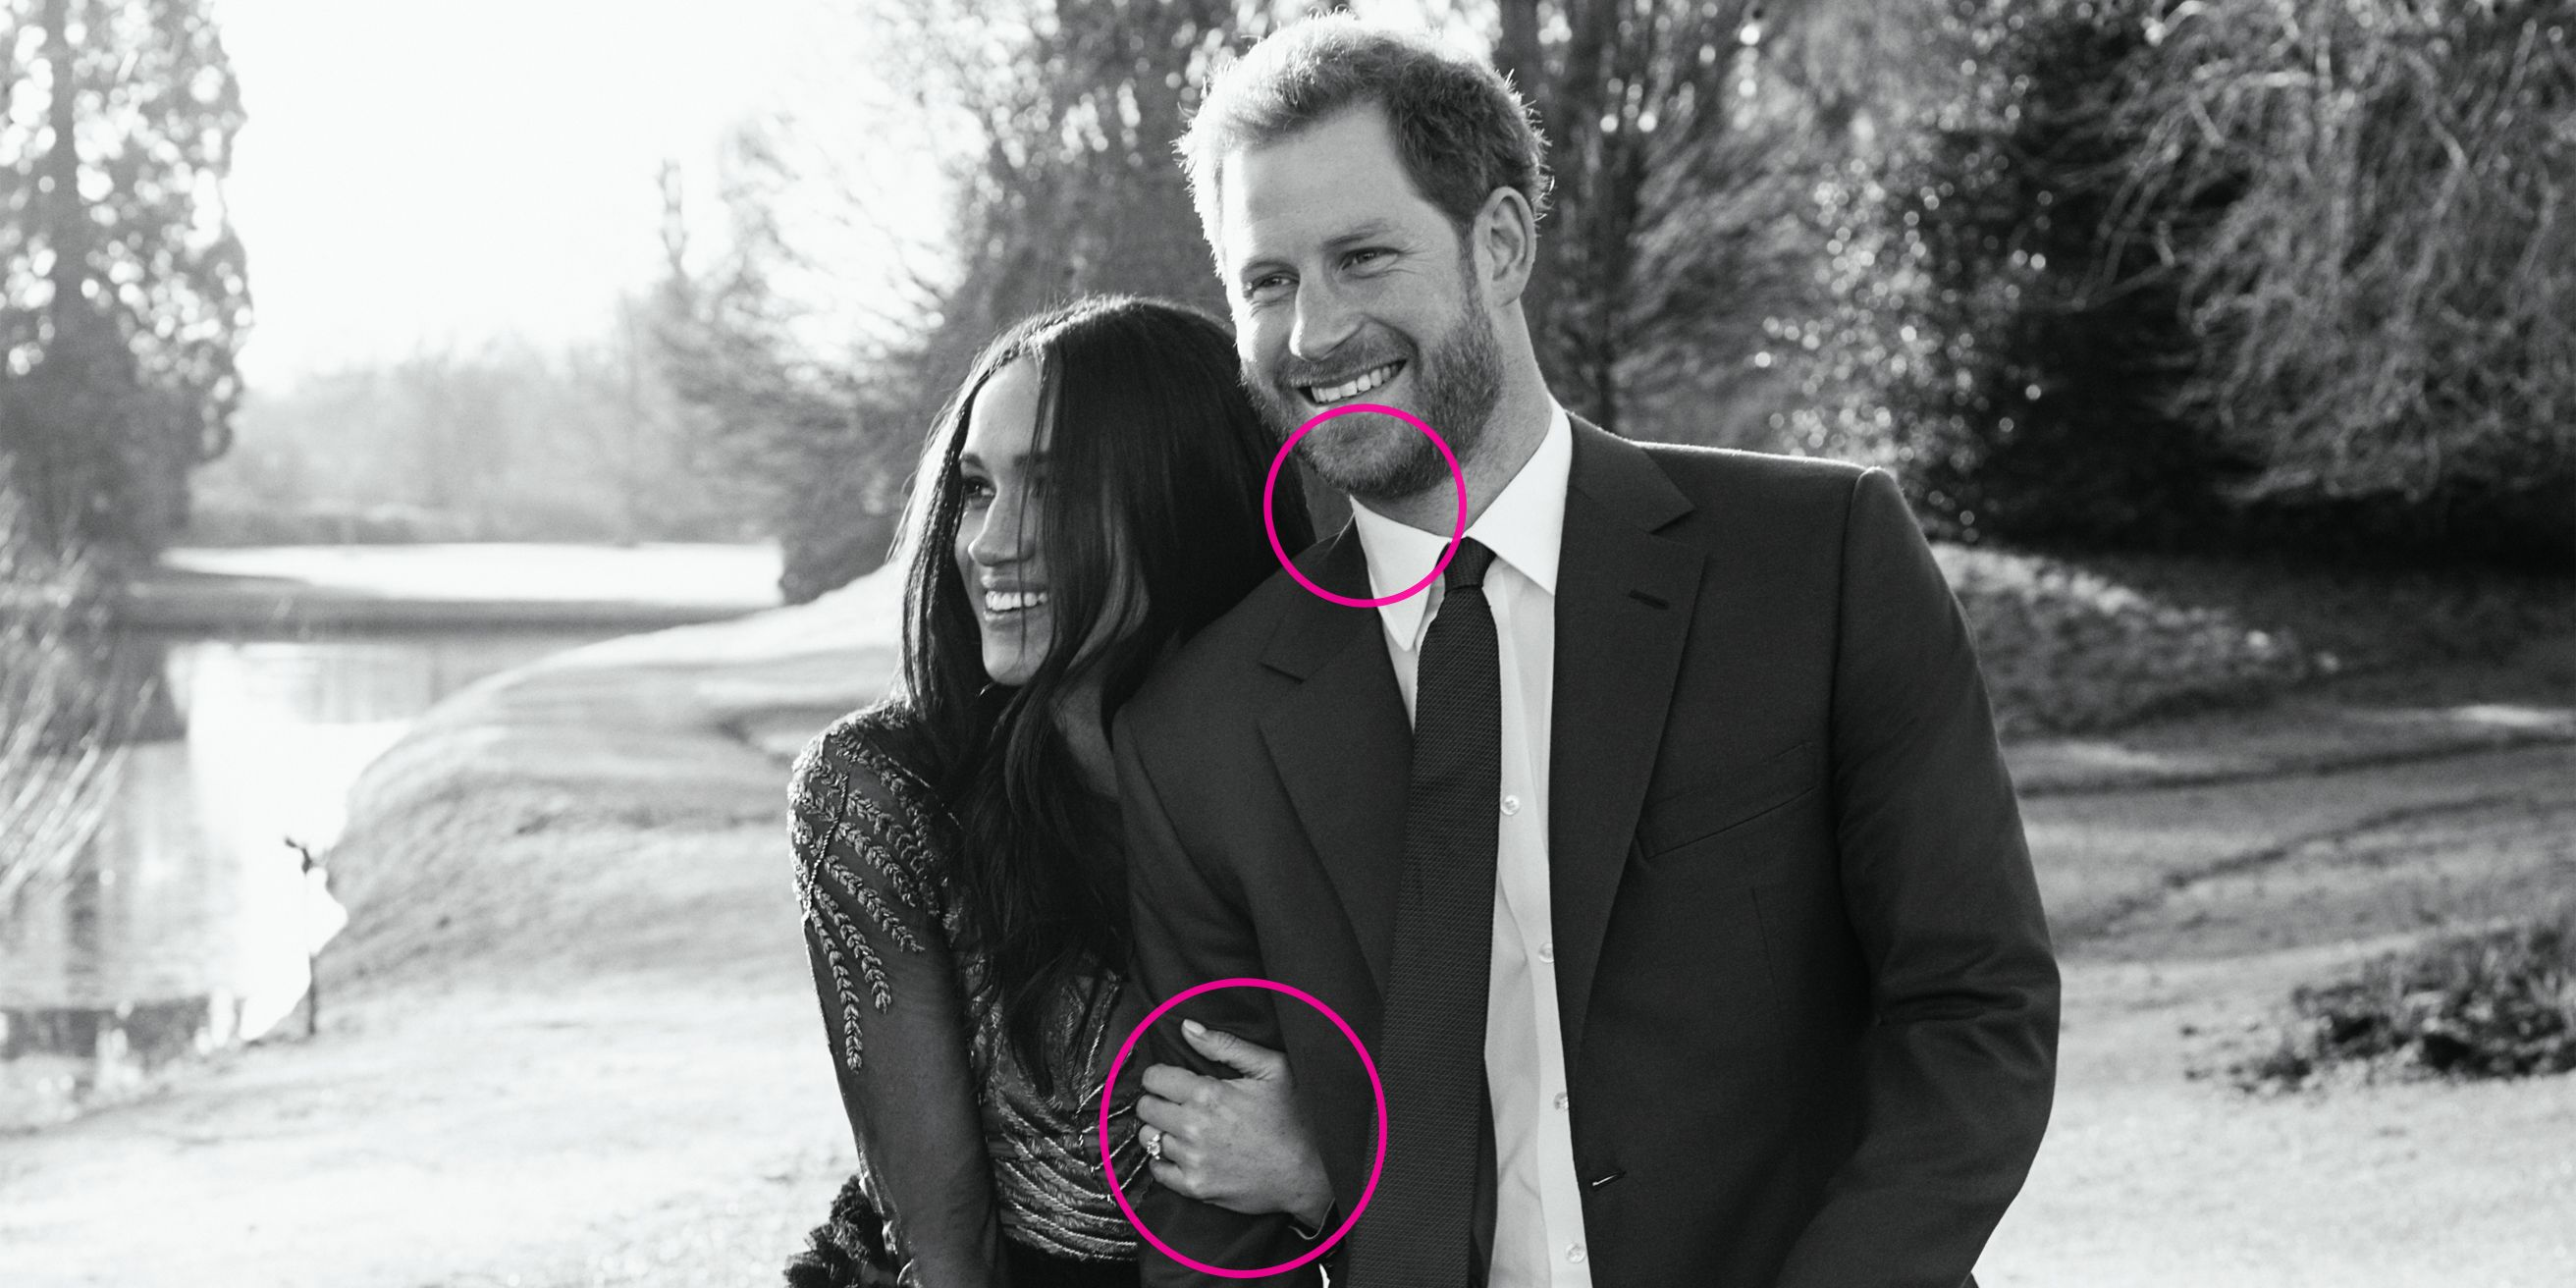 Body Language Experts Analyze Prince Harry and Meghan Markles Official Engagement Photos forecast